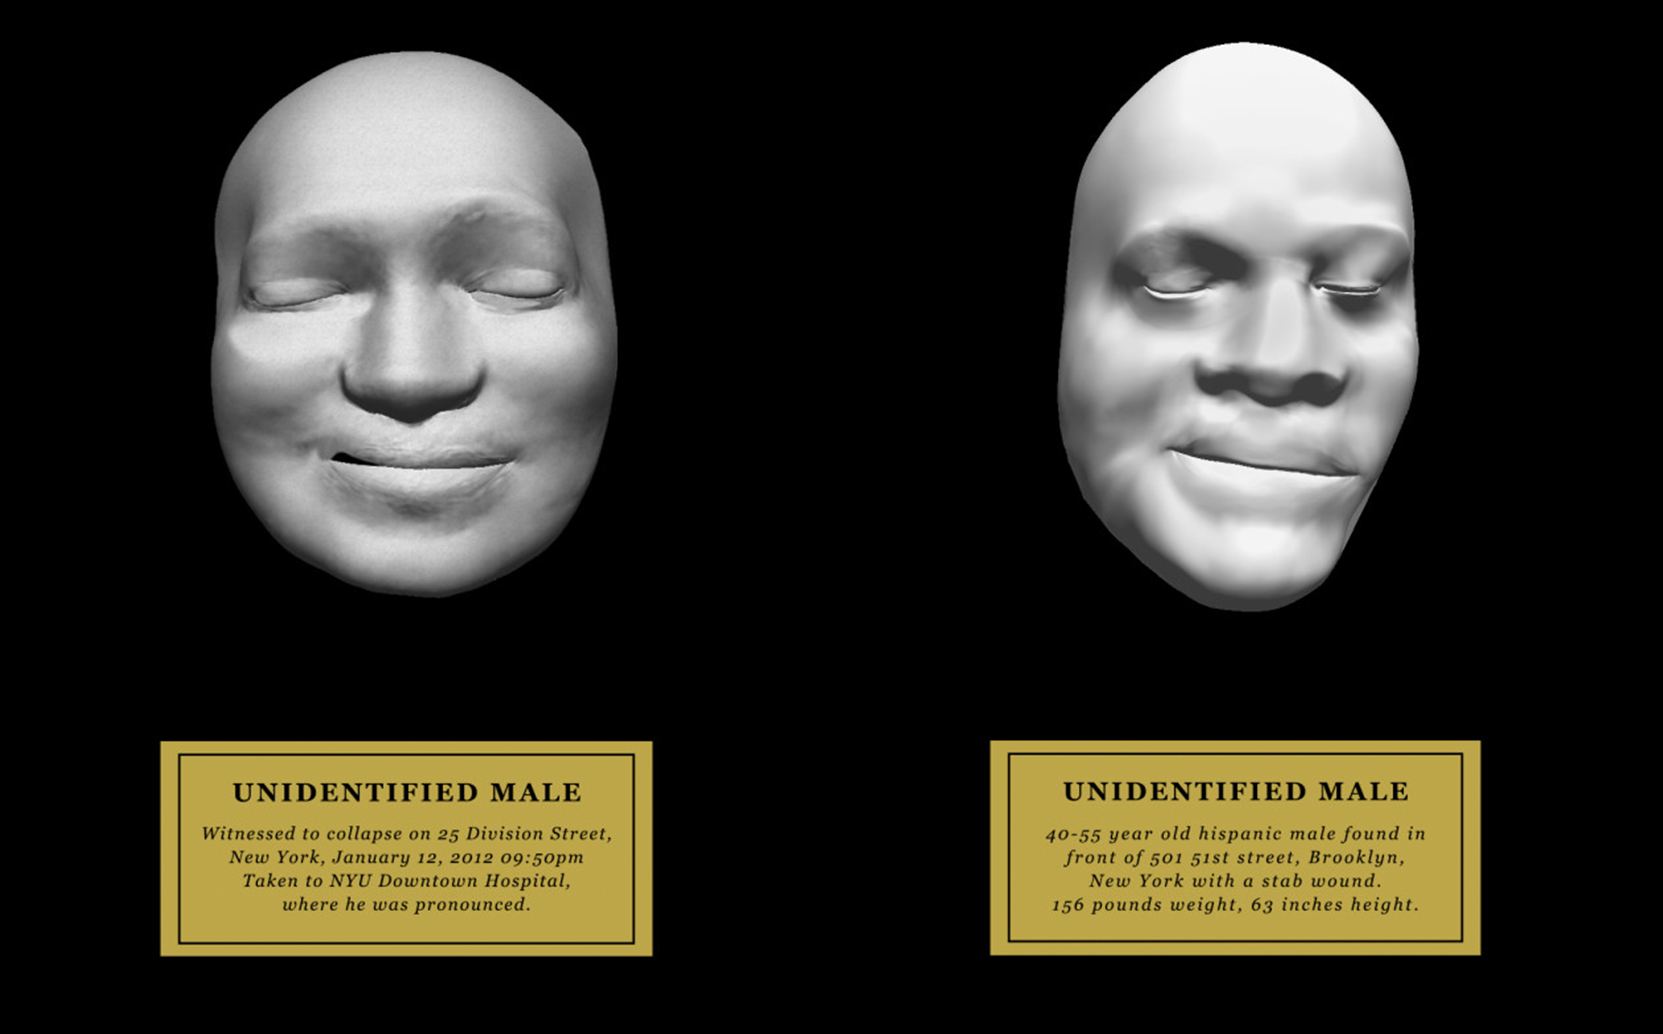 Death Masks for the Unidentified